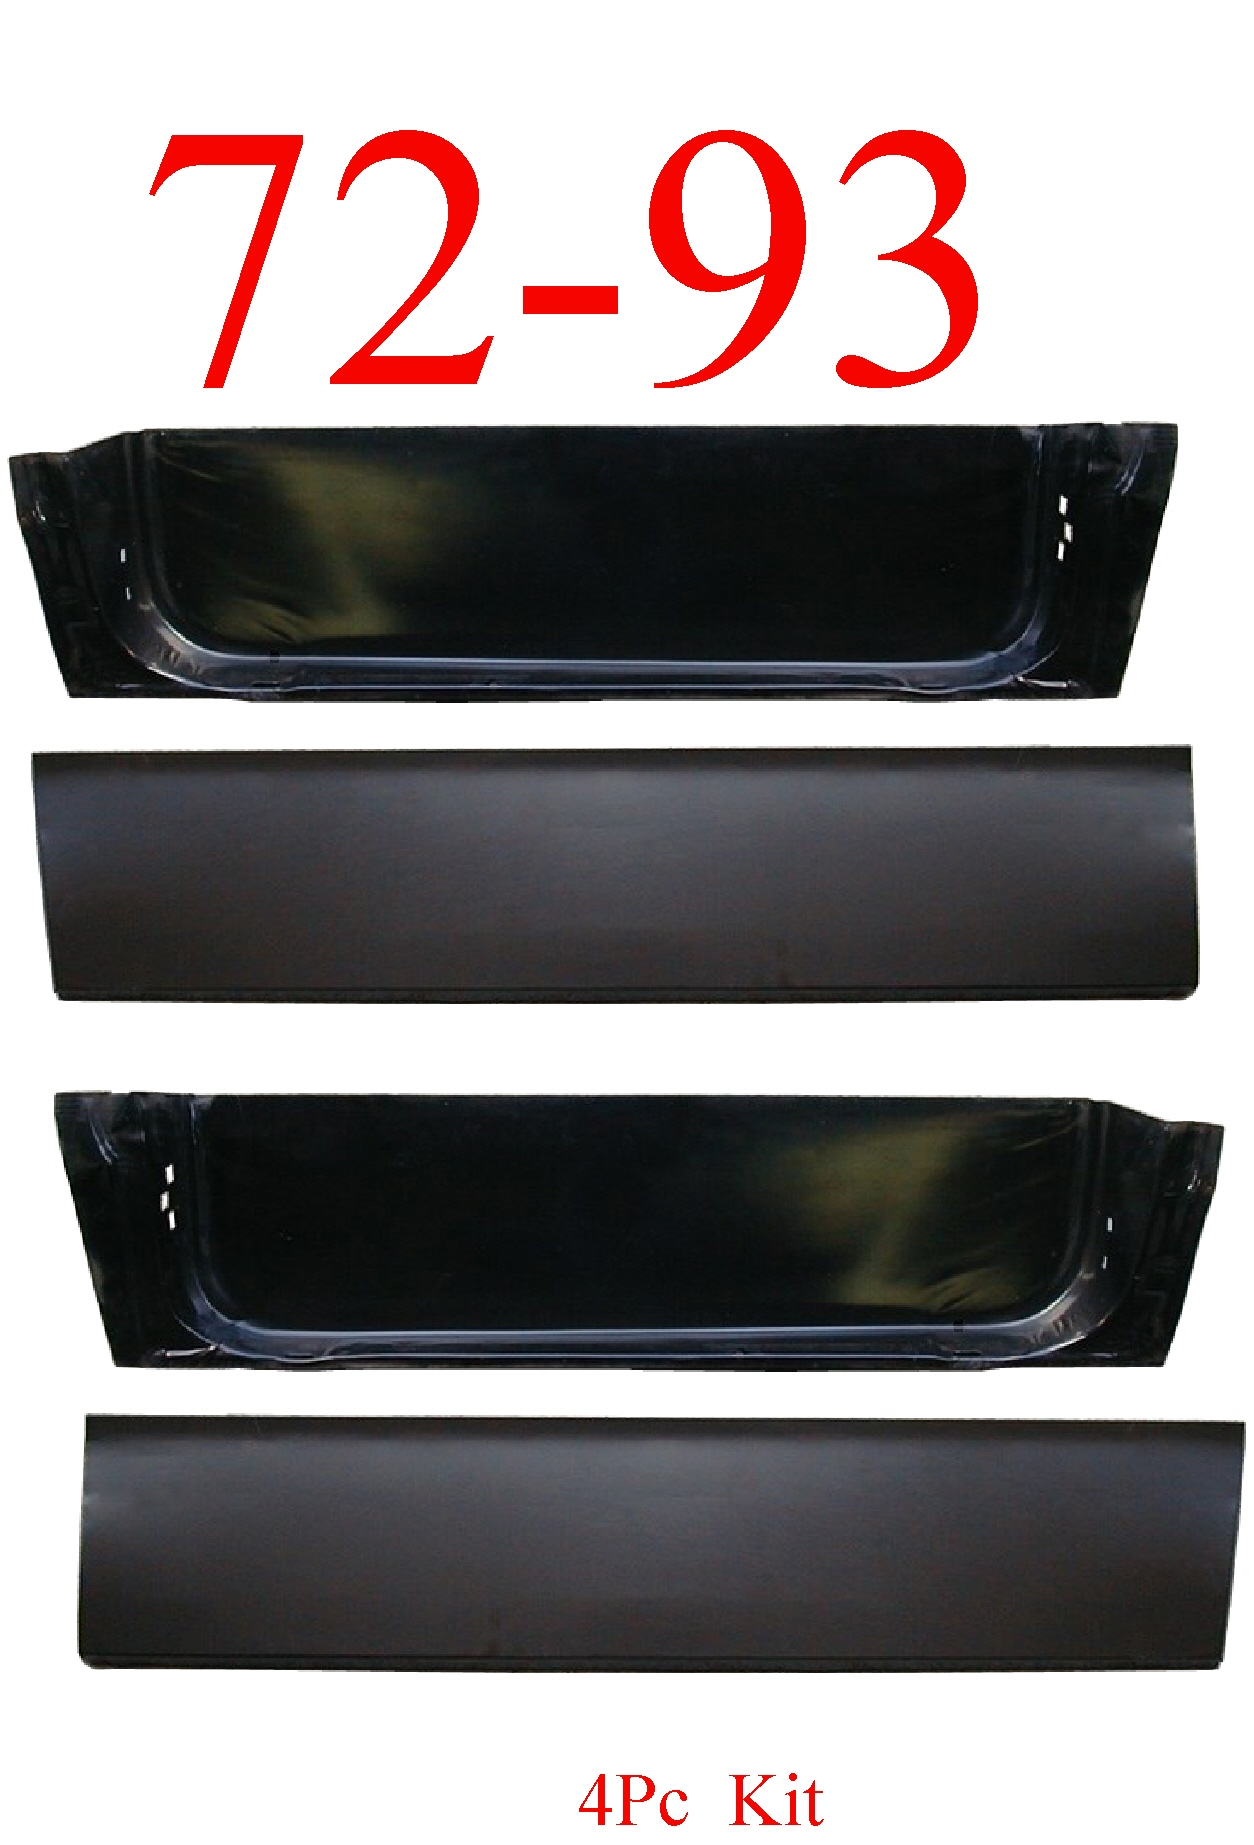 72-93 Dodge 4Pc Door Skin & Inner Bottom Set